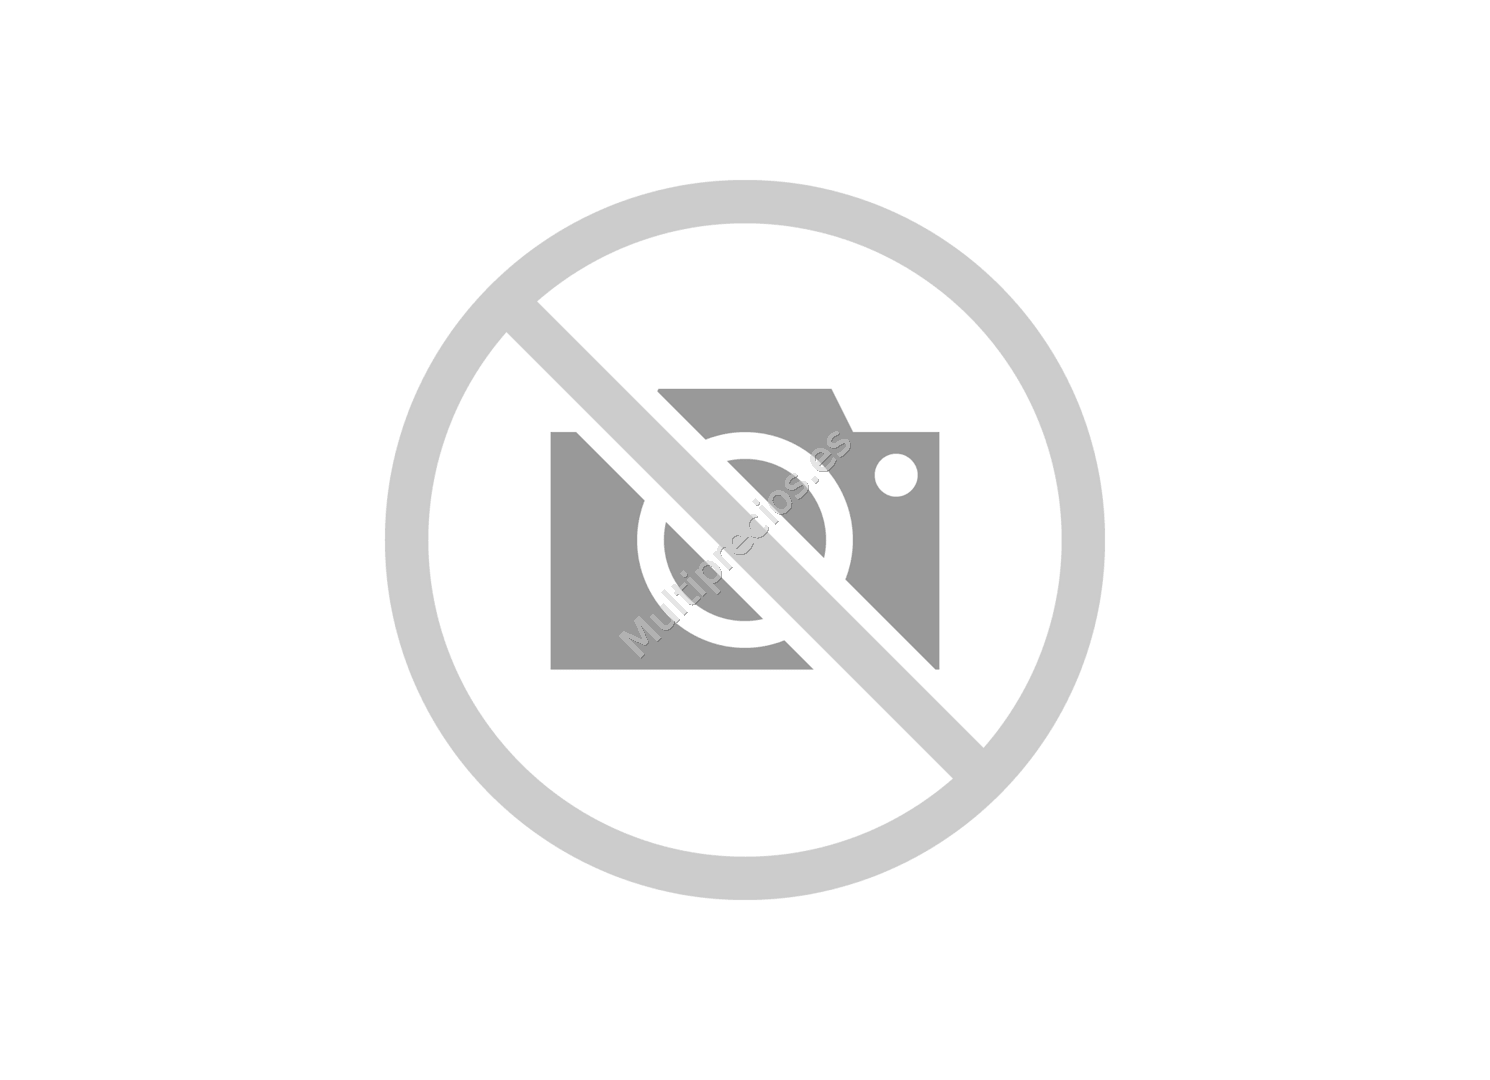 Pelota hinchable 51 cm.decorad